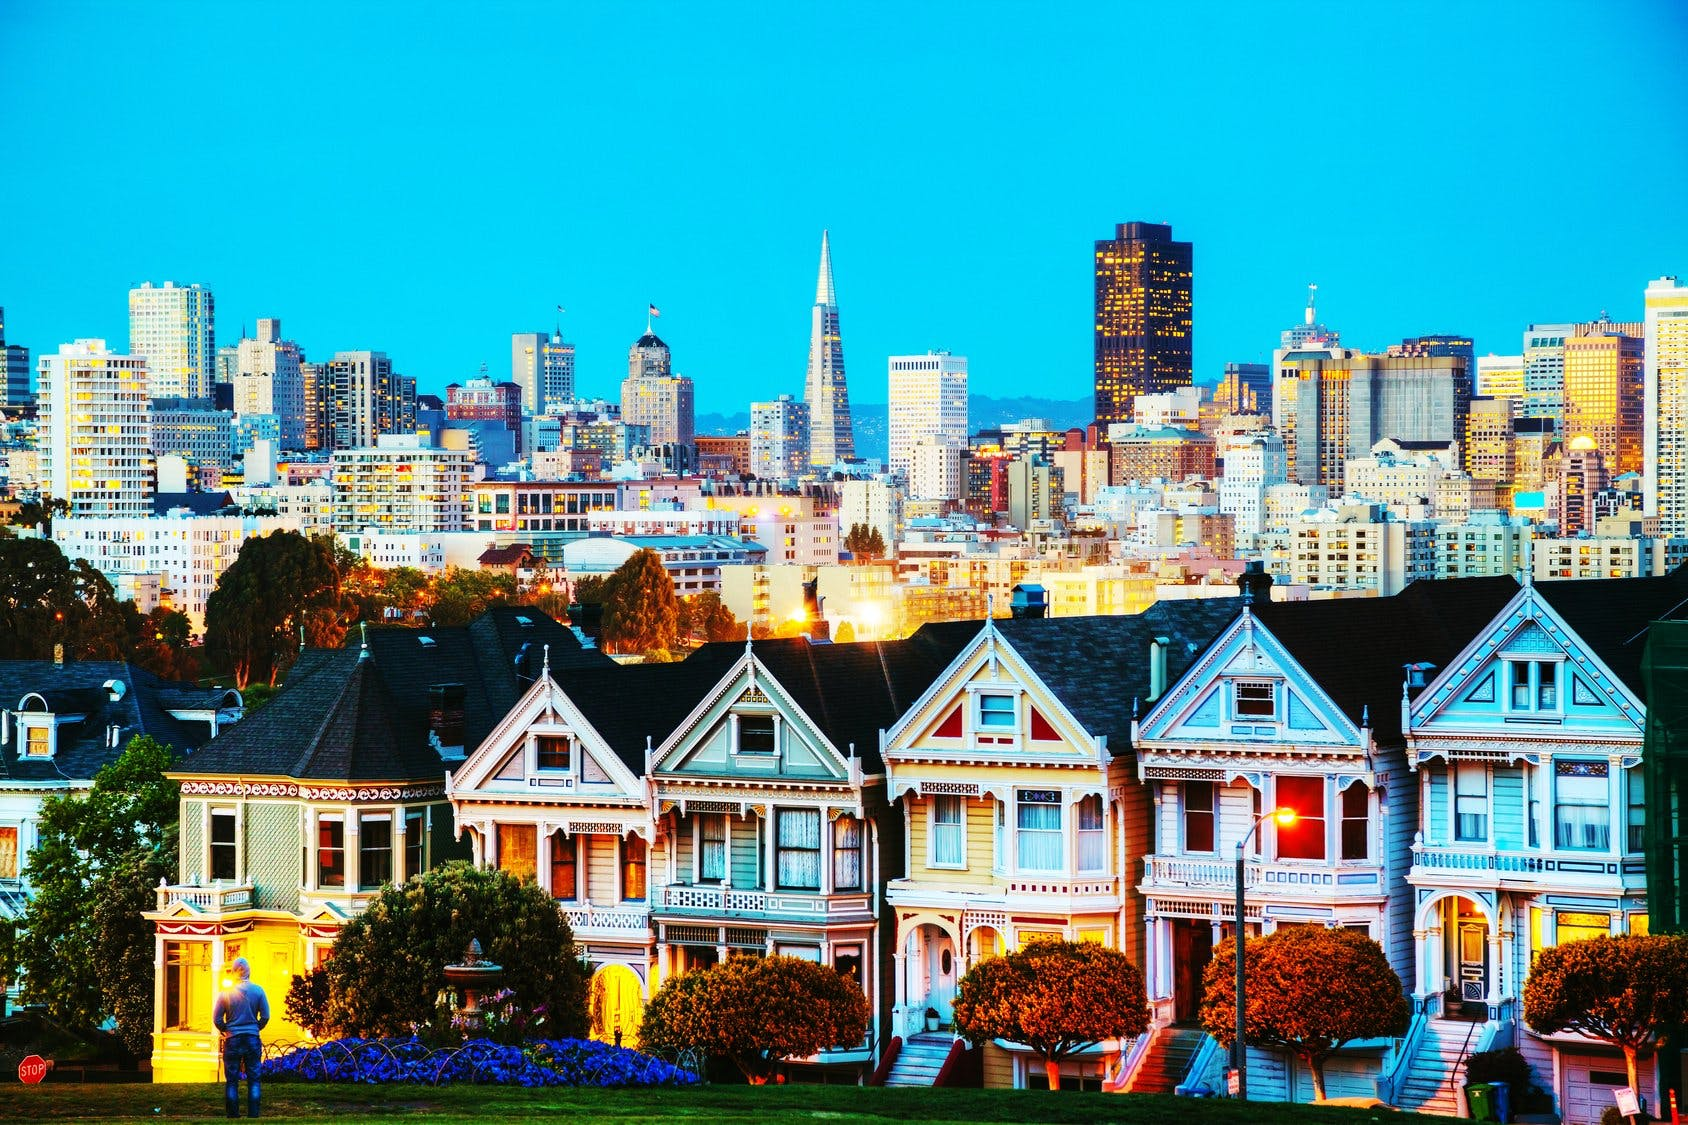 San Francisco Viena City